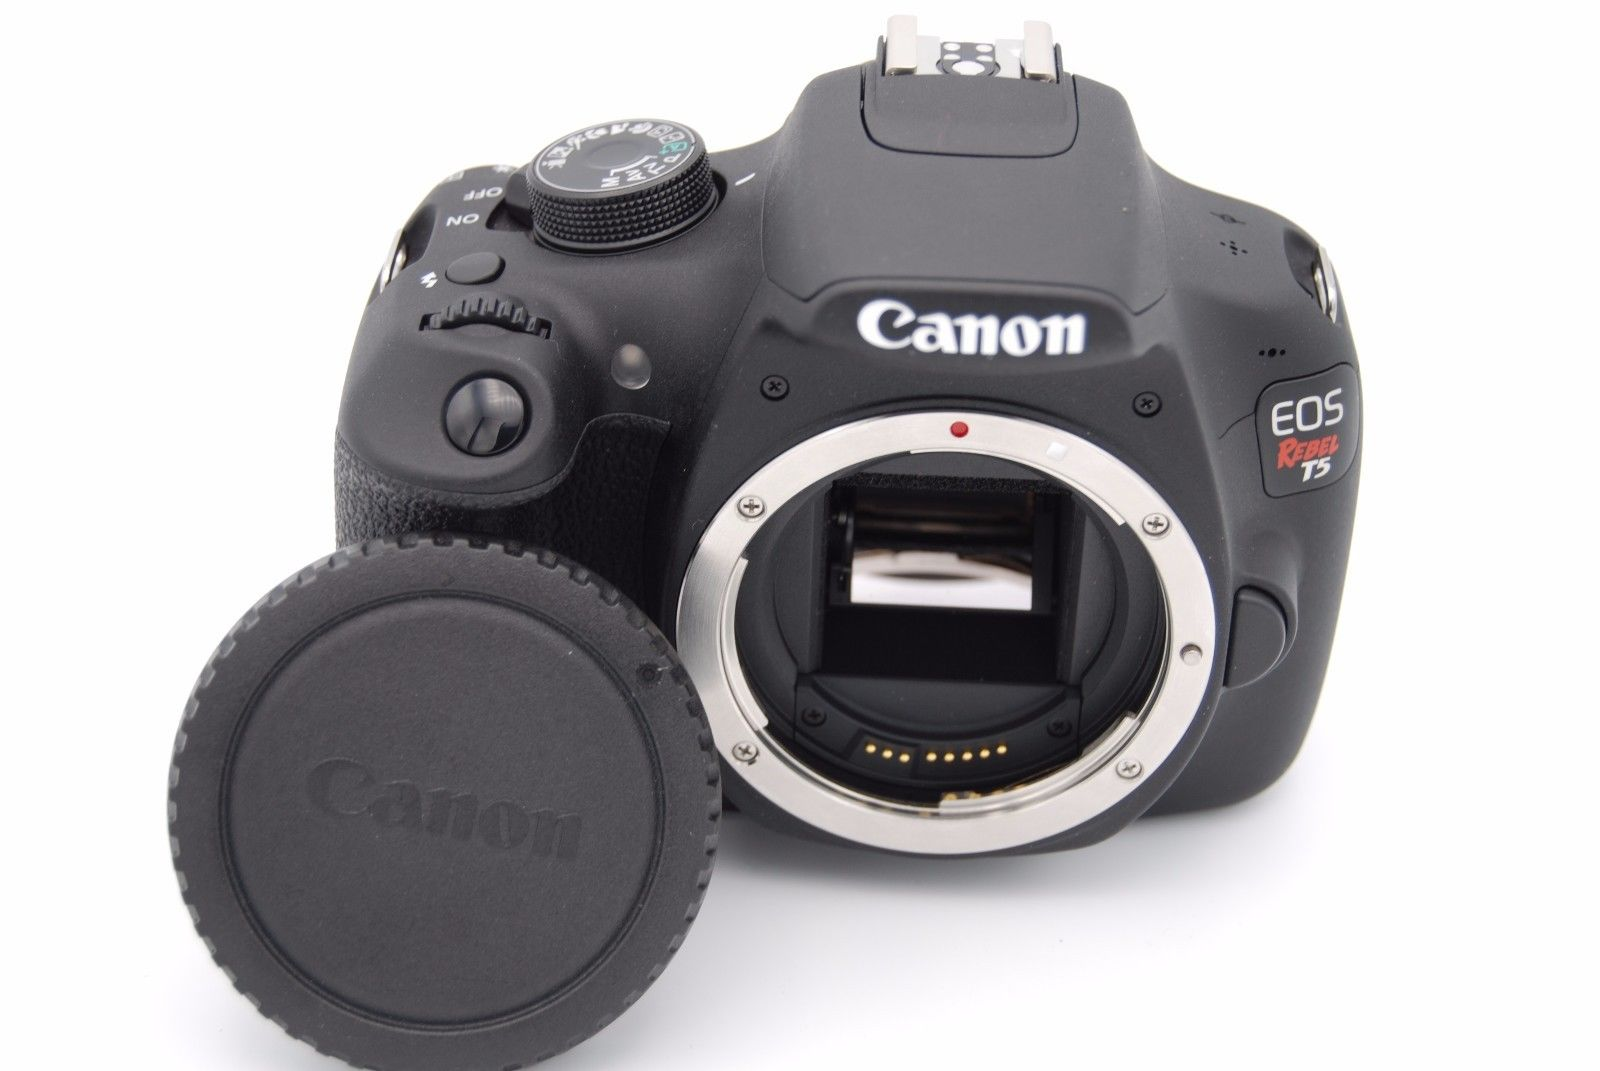 Details About Canon Eos 1200d Rebel T5 Kiss X70 18 0mp Digital Camera Shutter Count 320